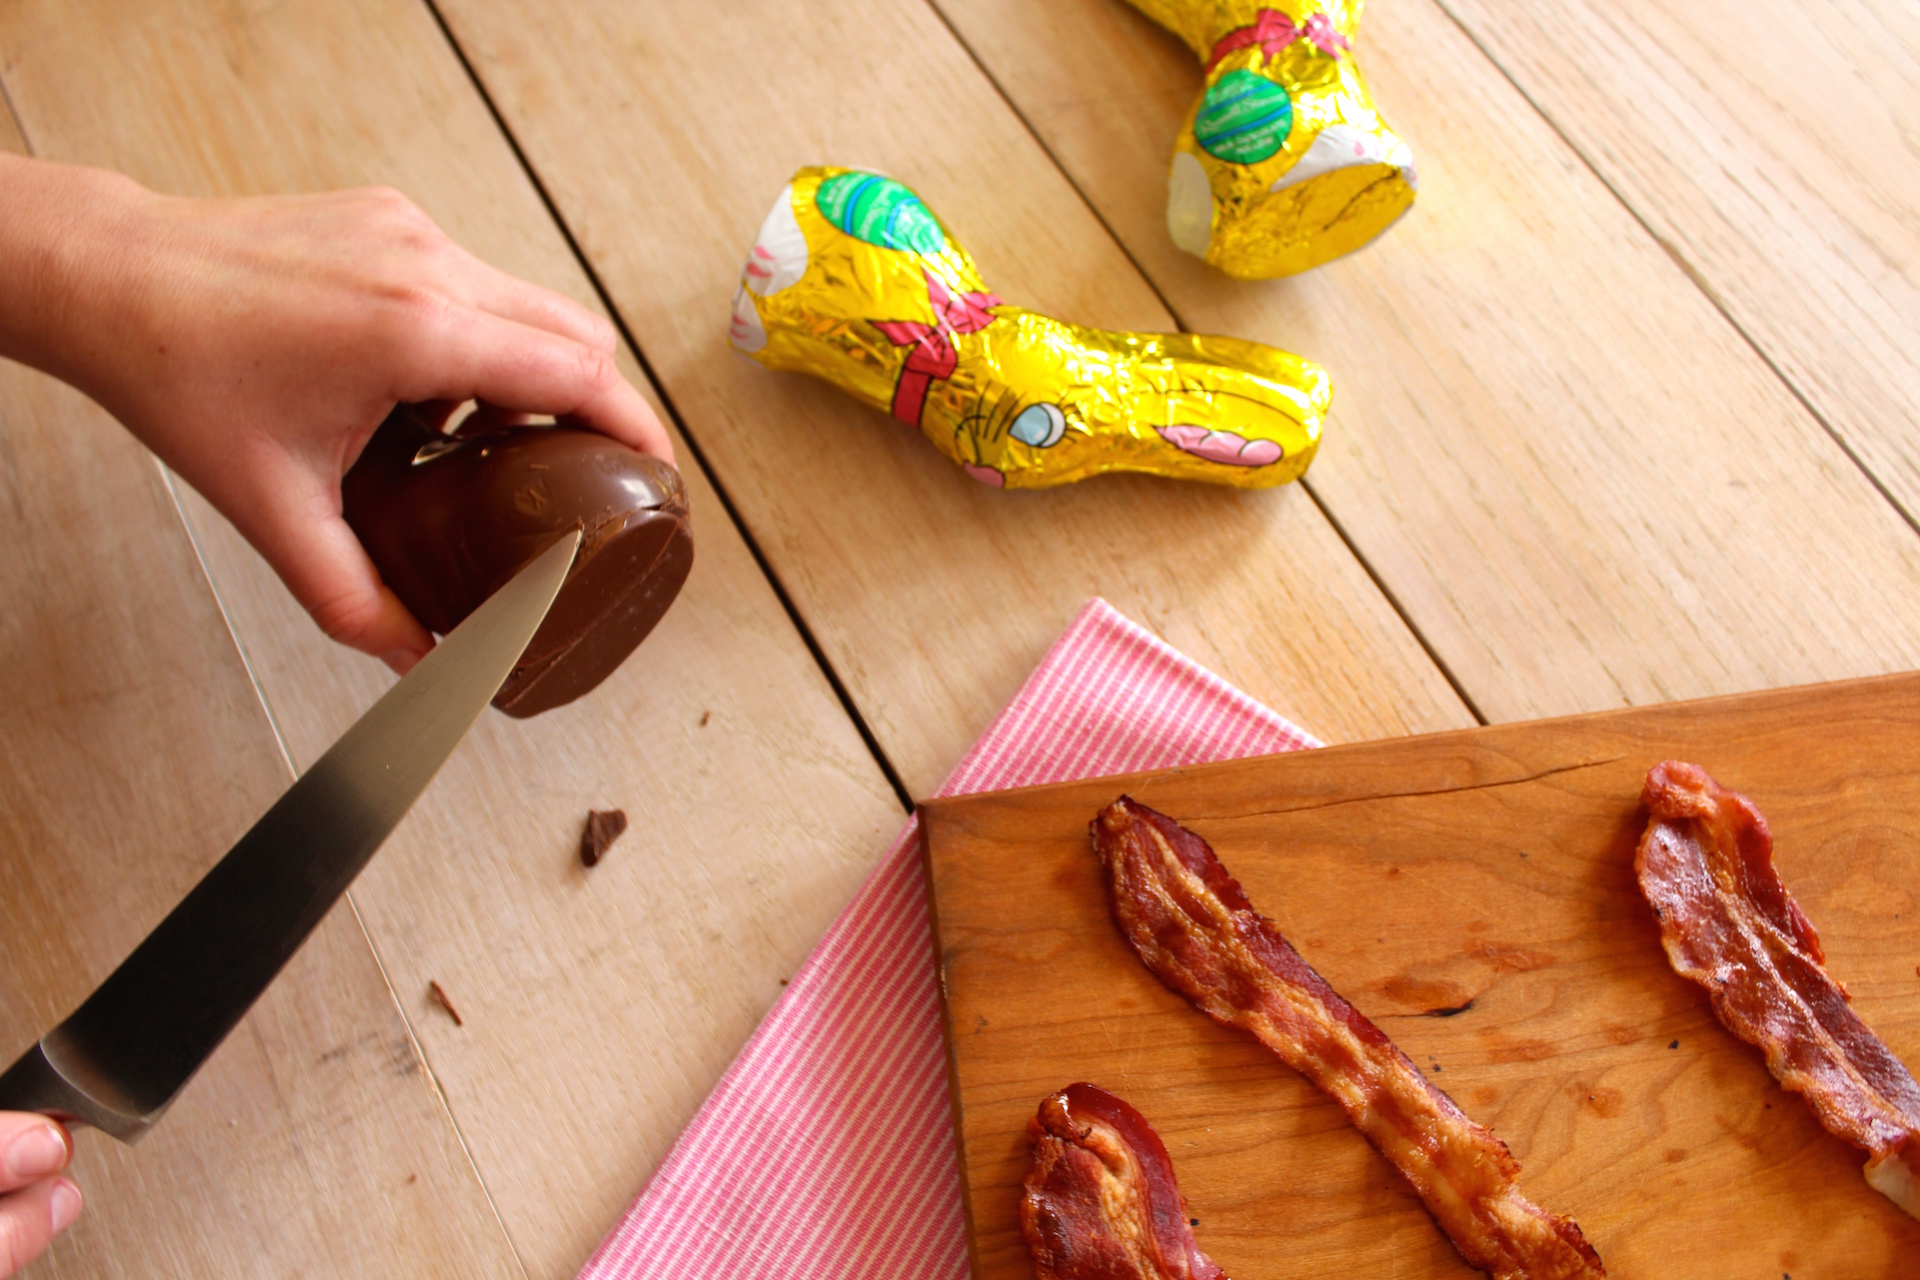 bacon-filled chocolate bunny